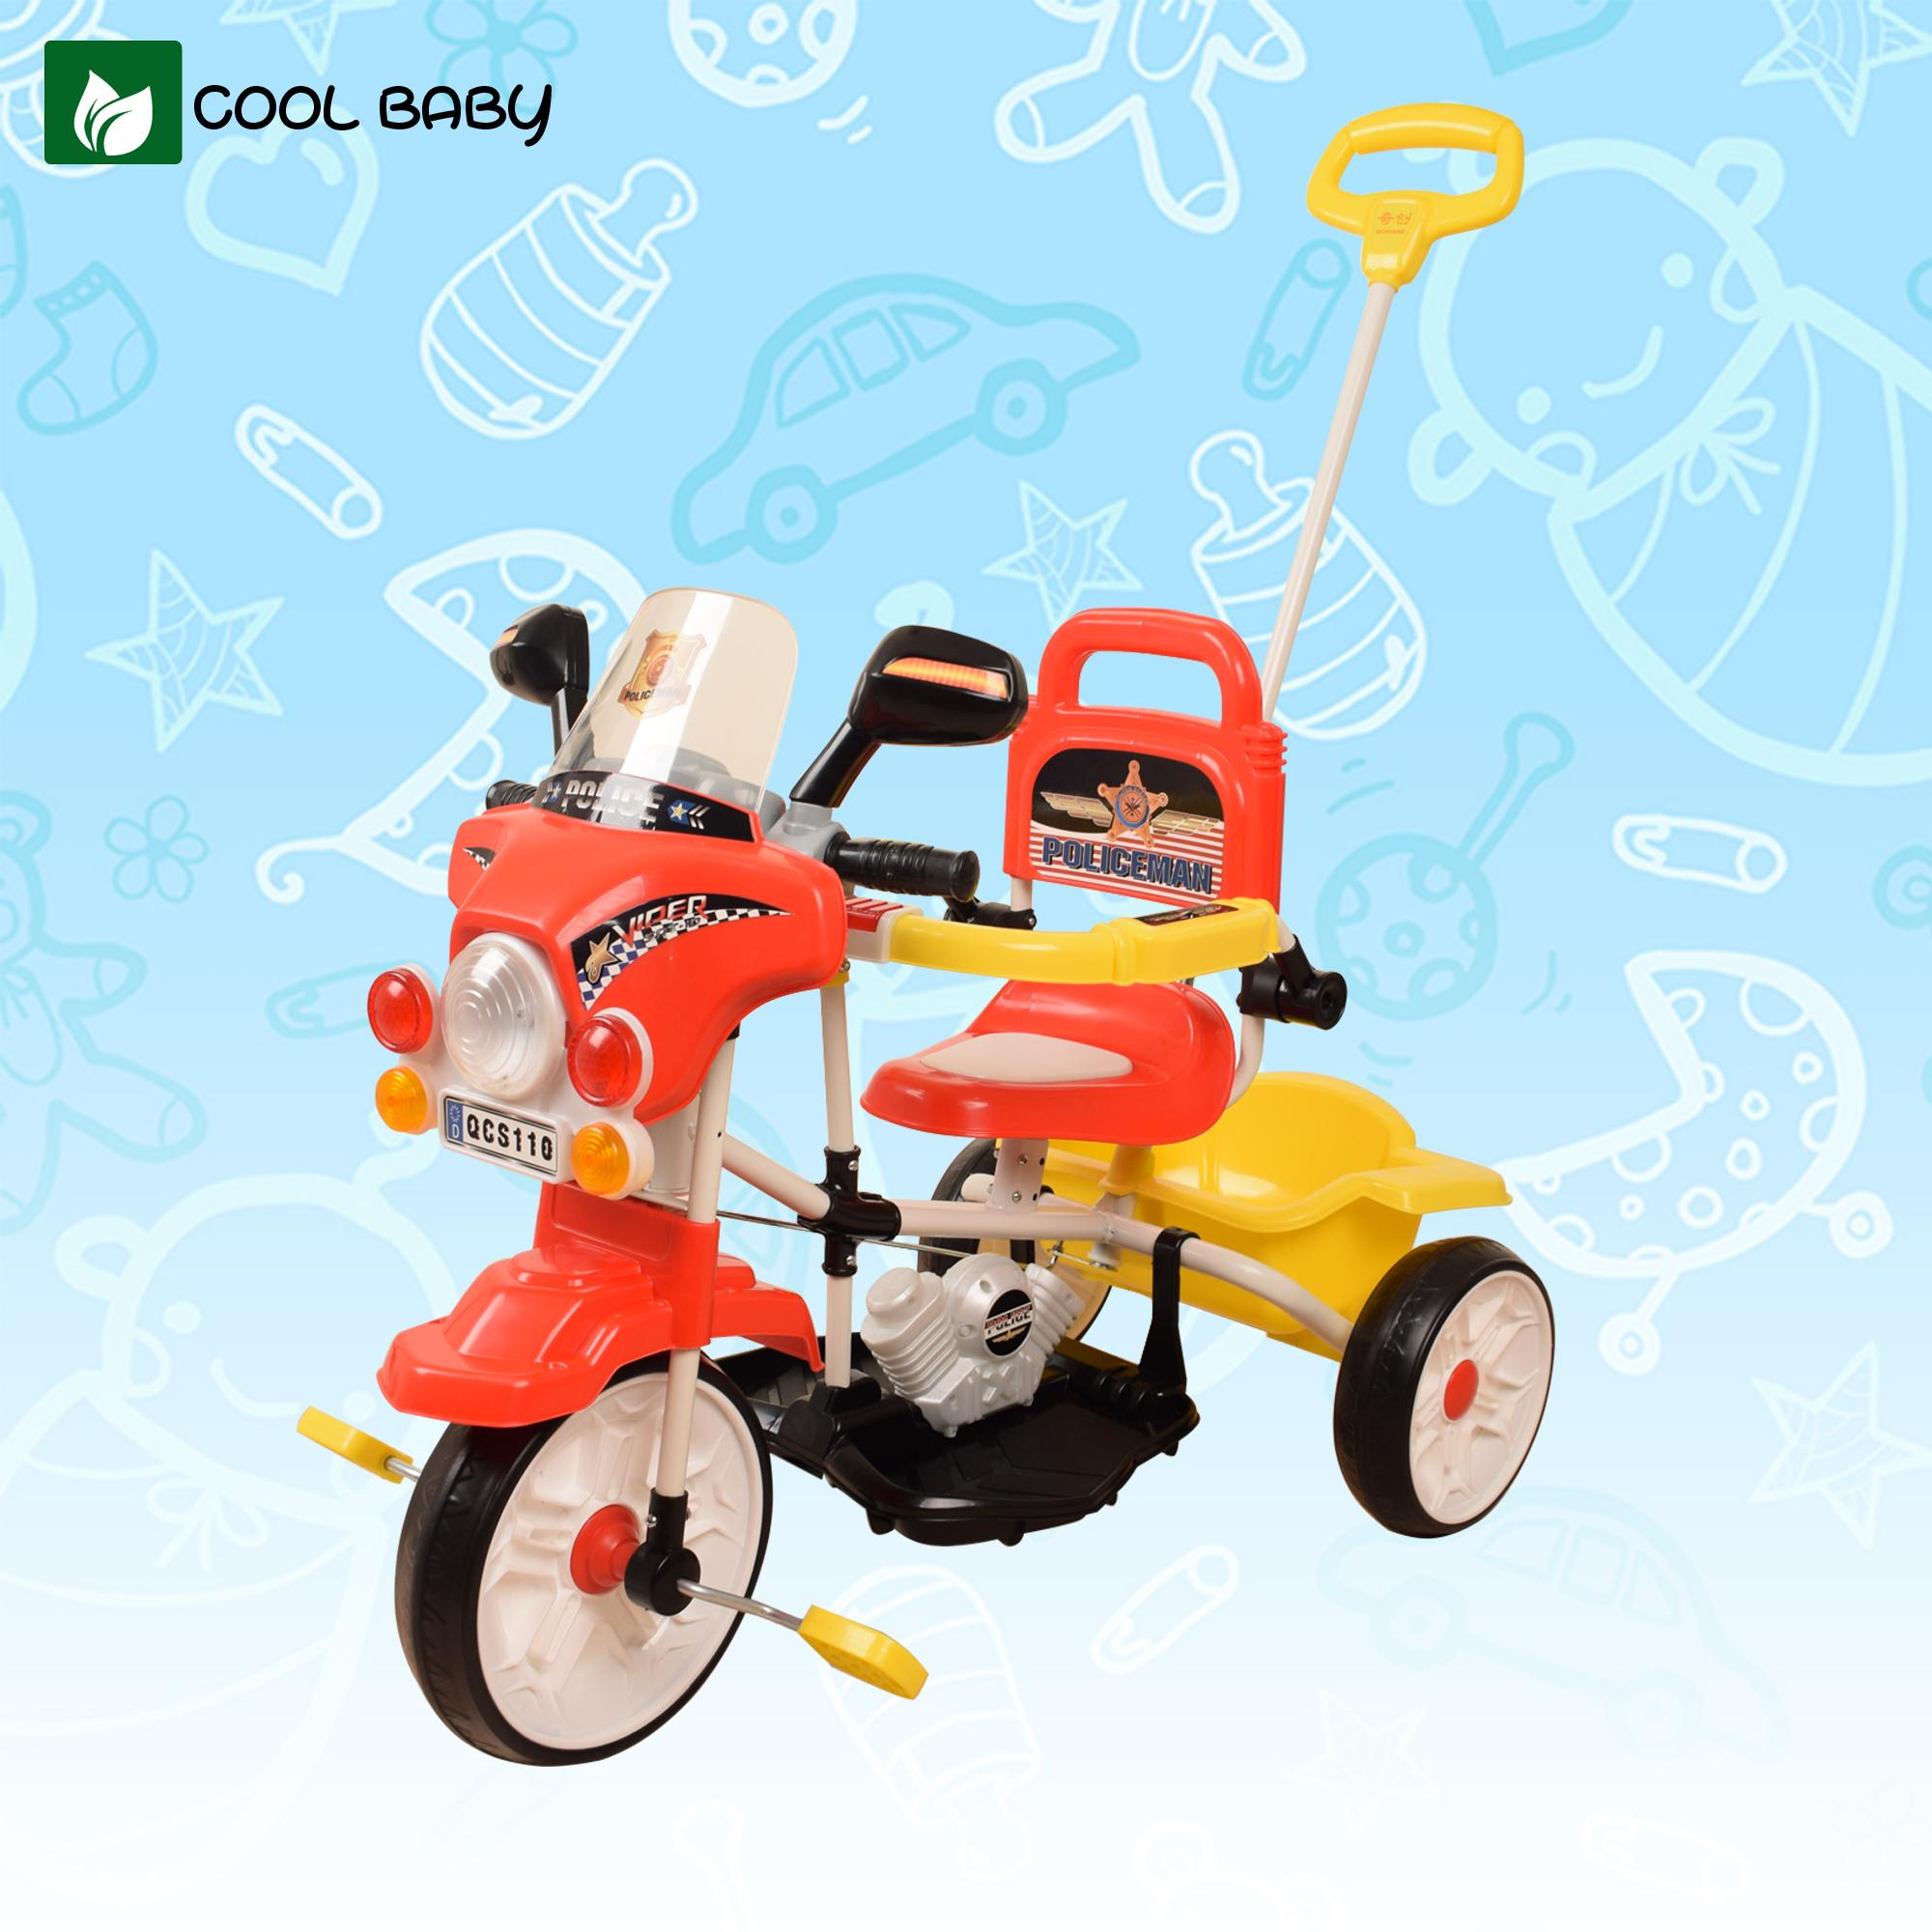 Cool Baby Police Tricycle Bike For Kids With Guide Assist Stroller With Safety Bar And Sounds By Cool Baby.